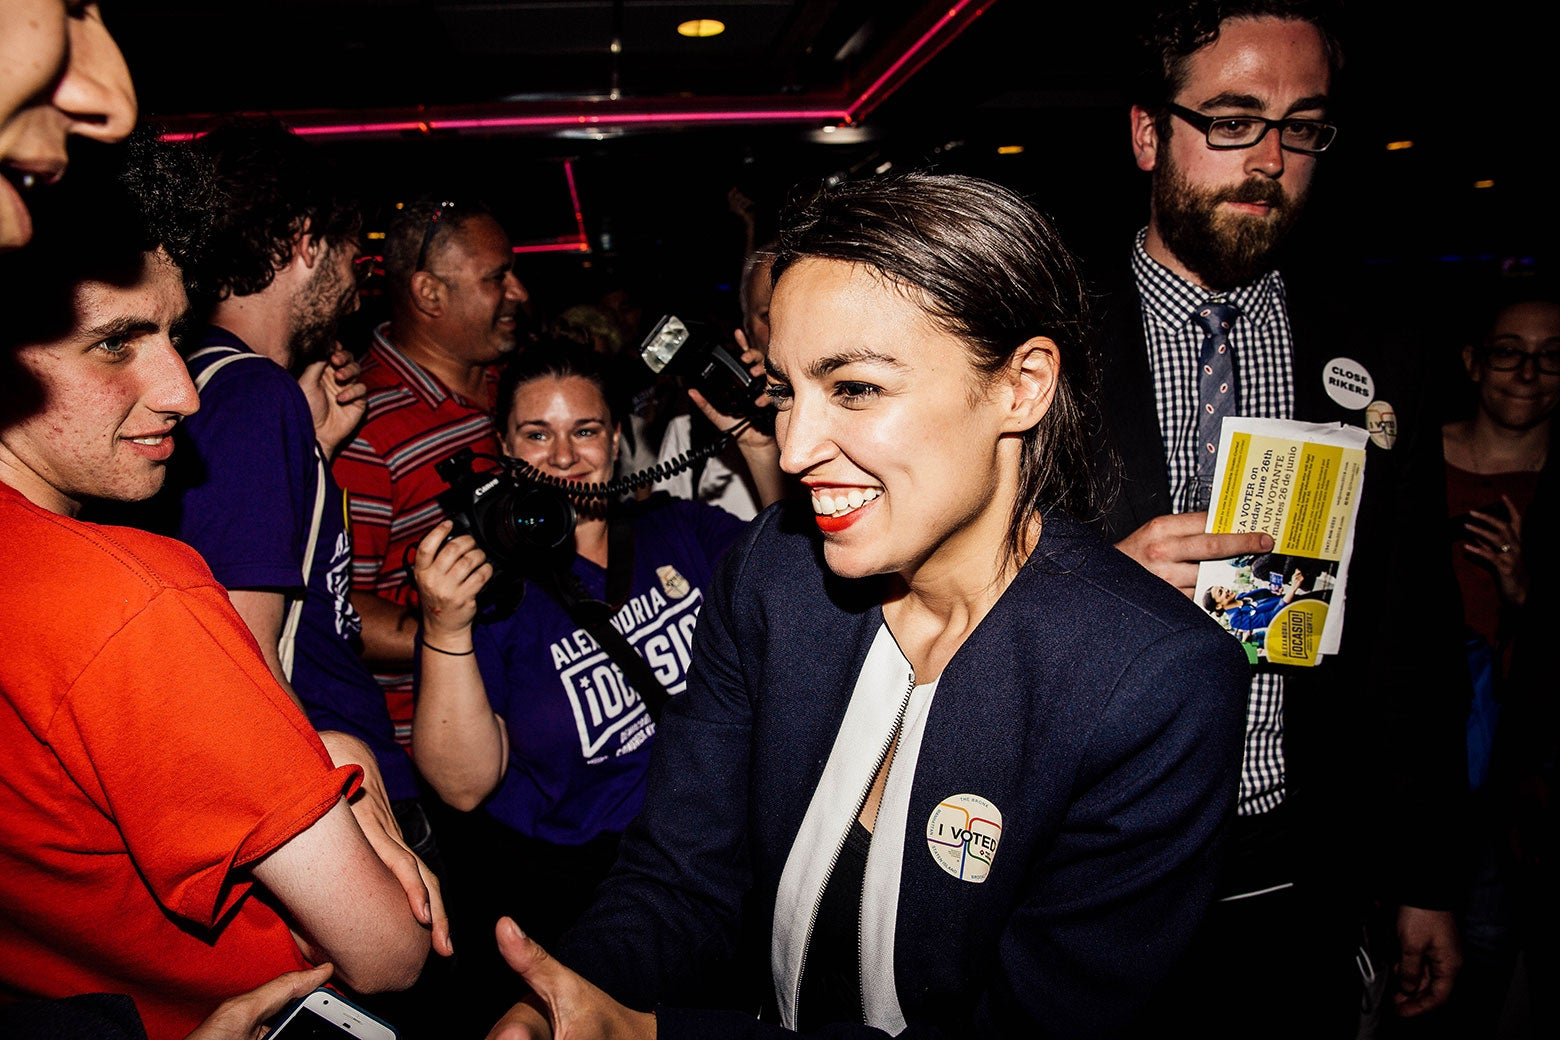 Alexandria Ocasio-Cortez celebrates with supporters at a victory party on Tuesday.